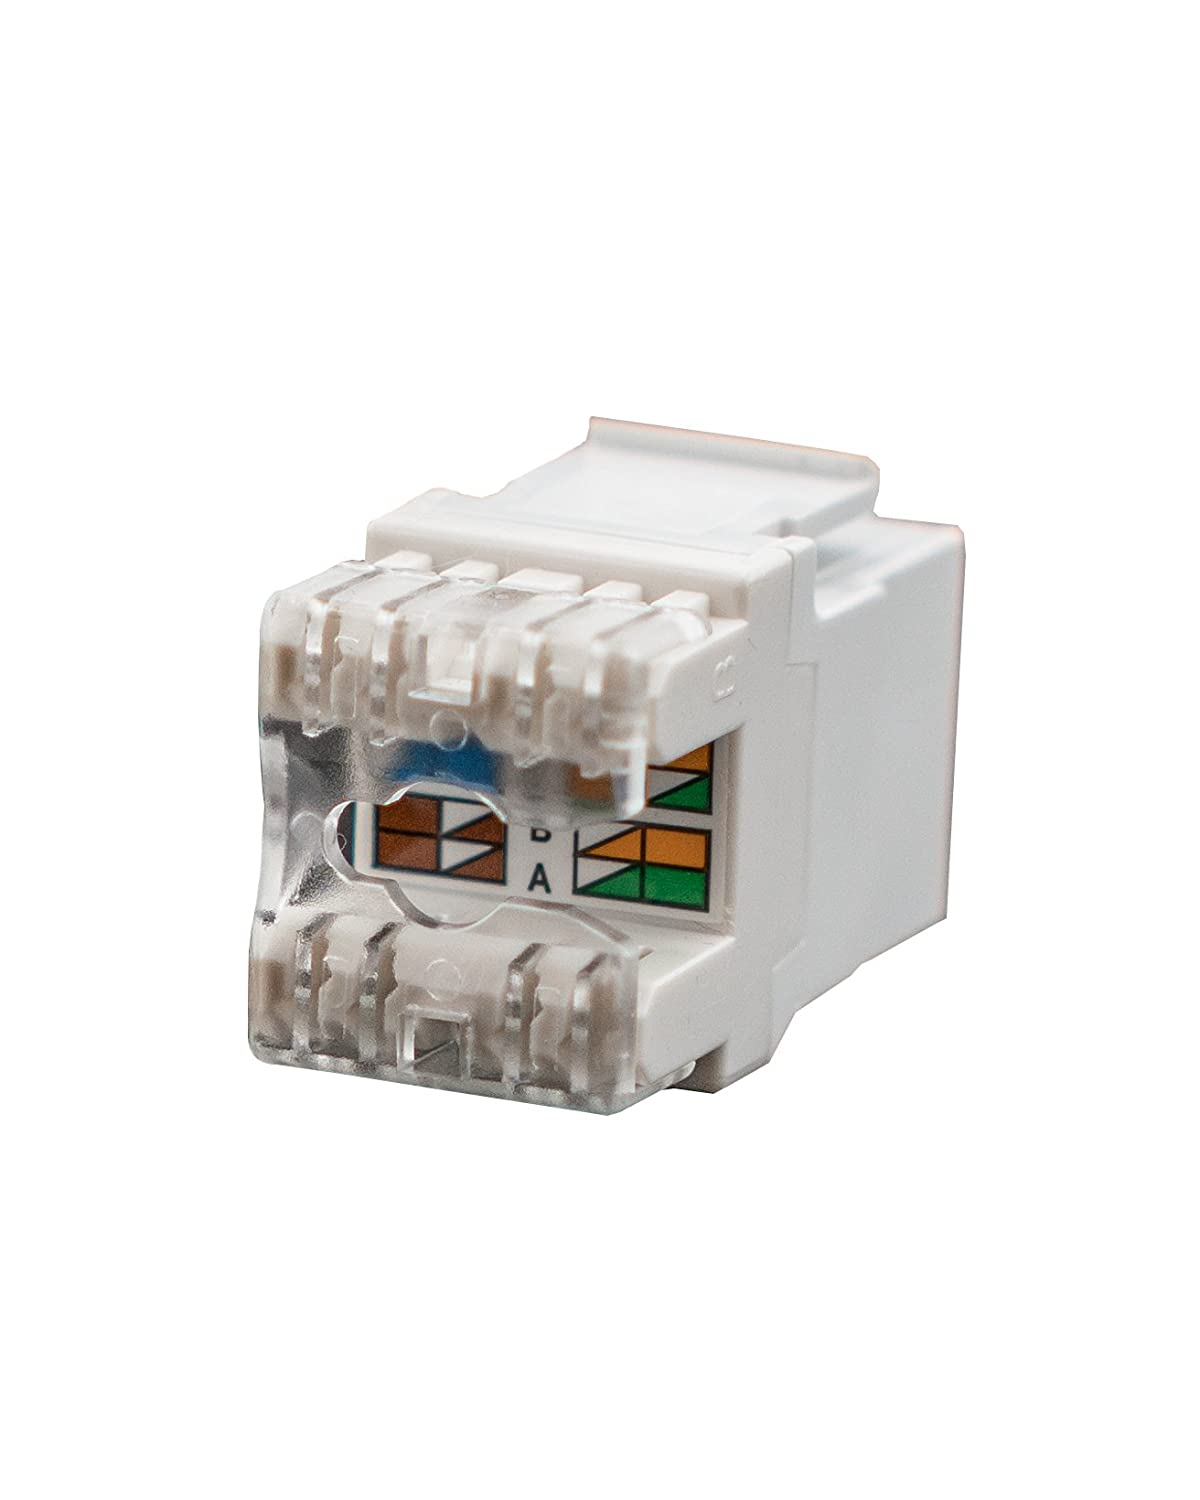 Legrand On Q Data Phone Jack White 5 Pack F3450whv5 Rj45 Wall Plate Work In Addition Cat5e Keystone Wiring Diagram As